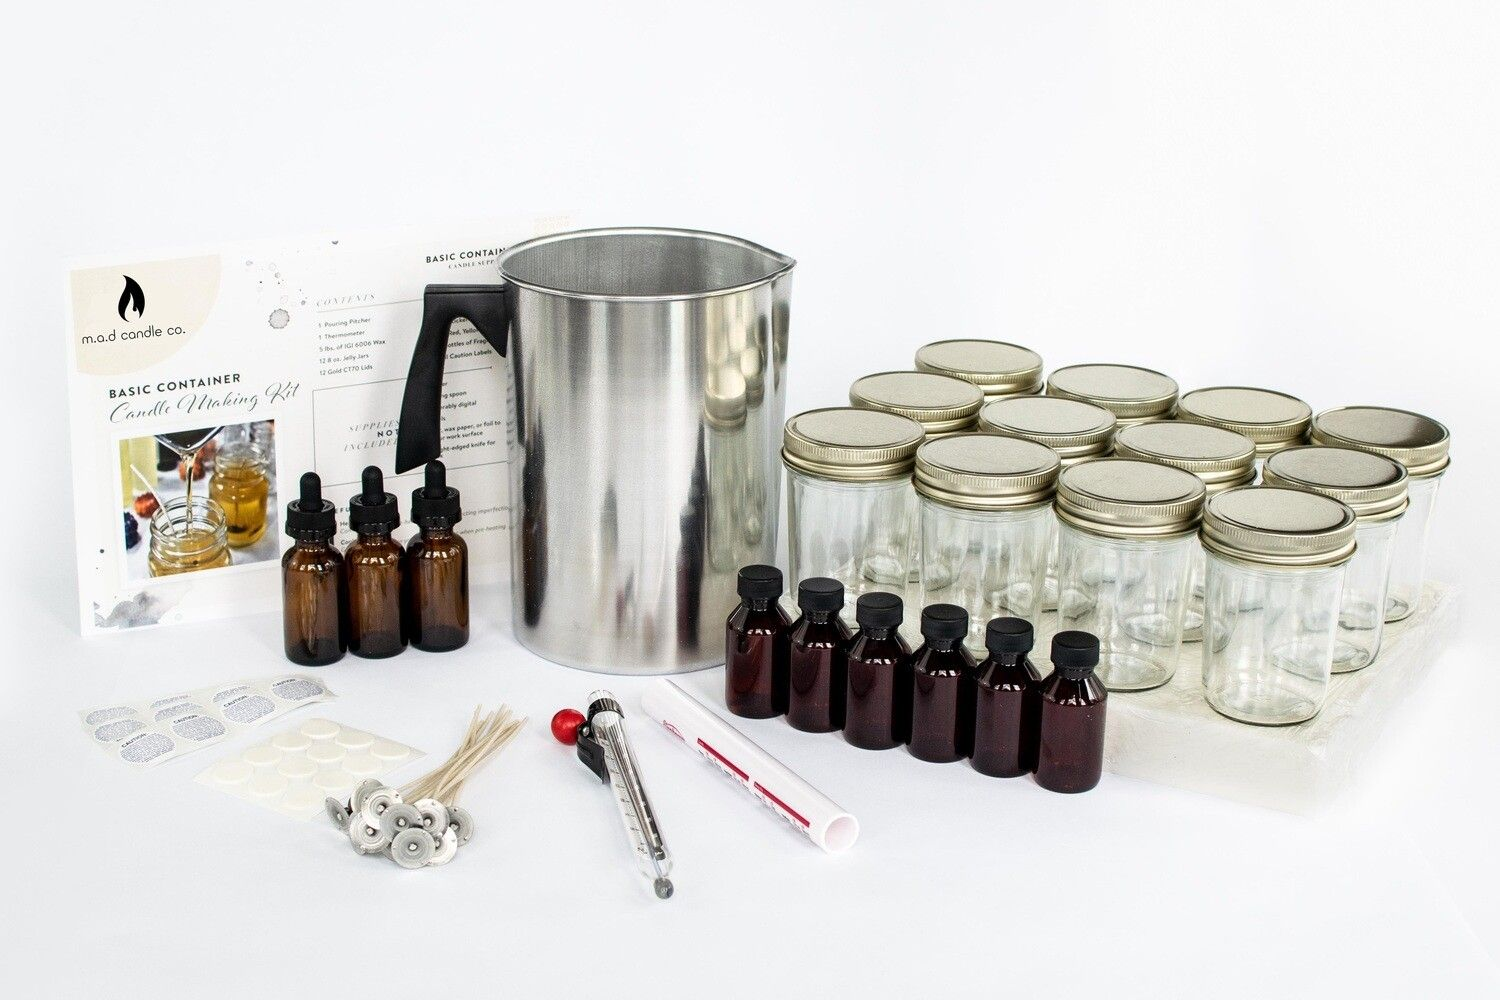 Basic Candle Making Kit candles candlemaking